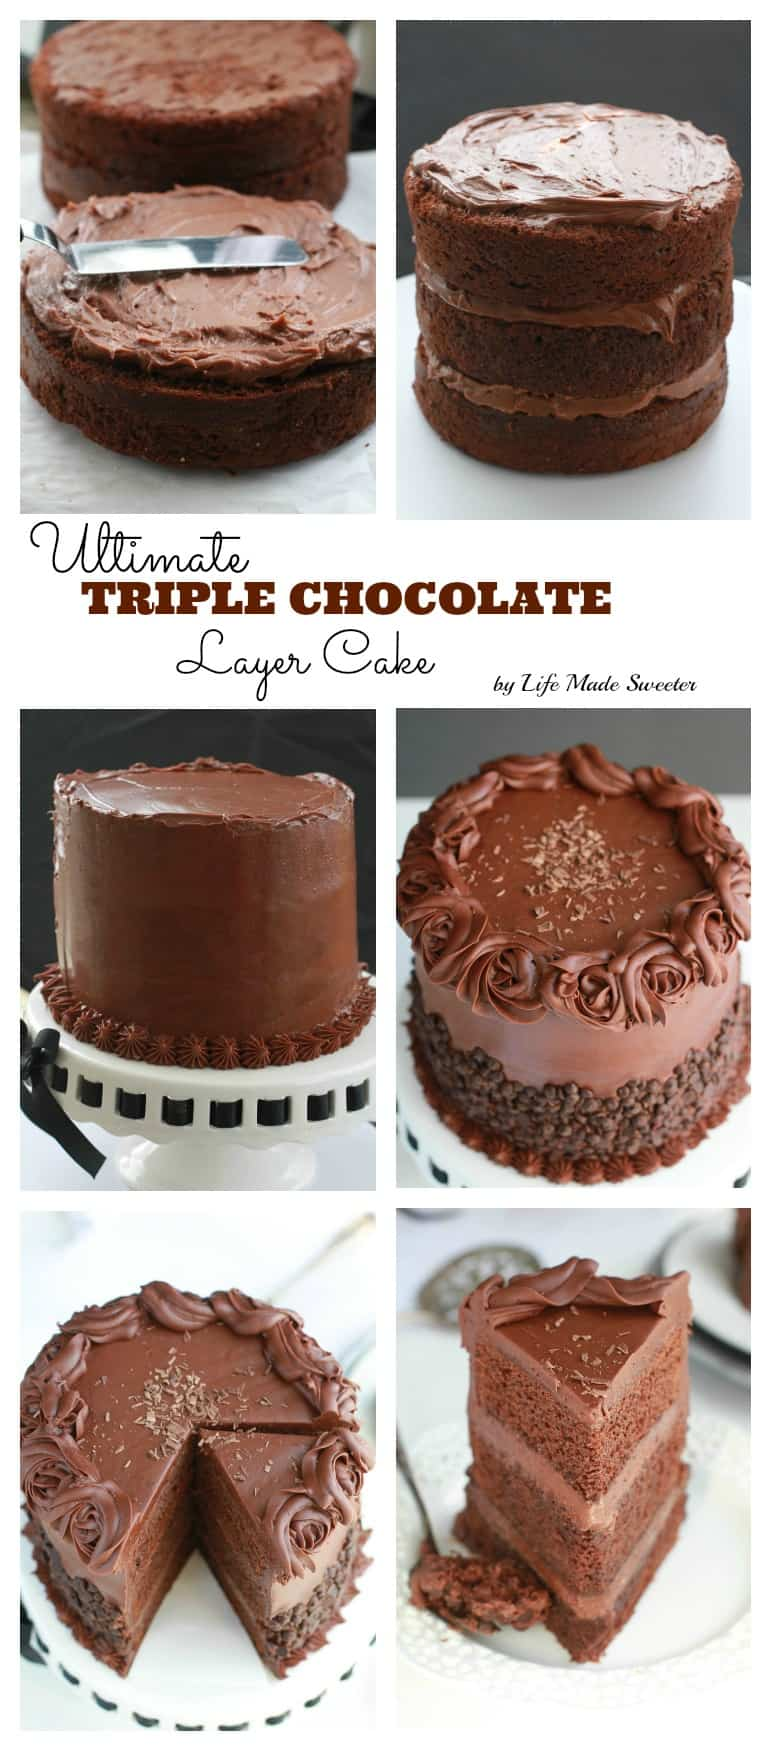 Chocolate Layer Cake With Mocha Milk Chocolate Frosting Recipe ...